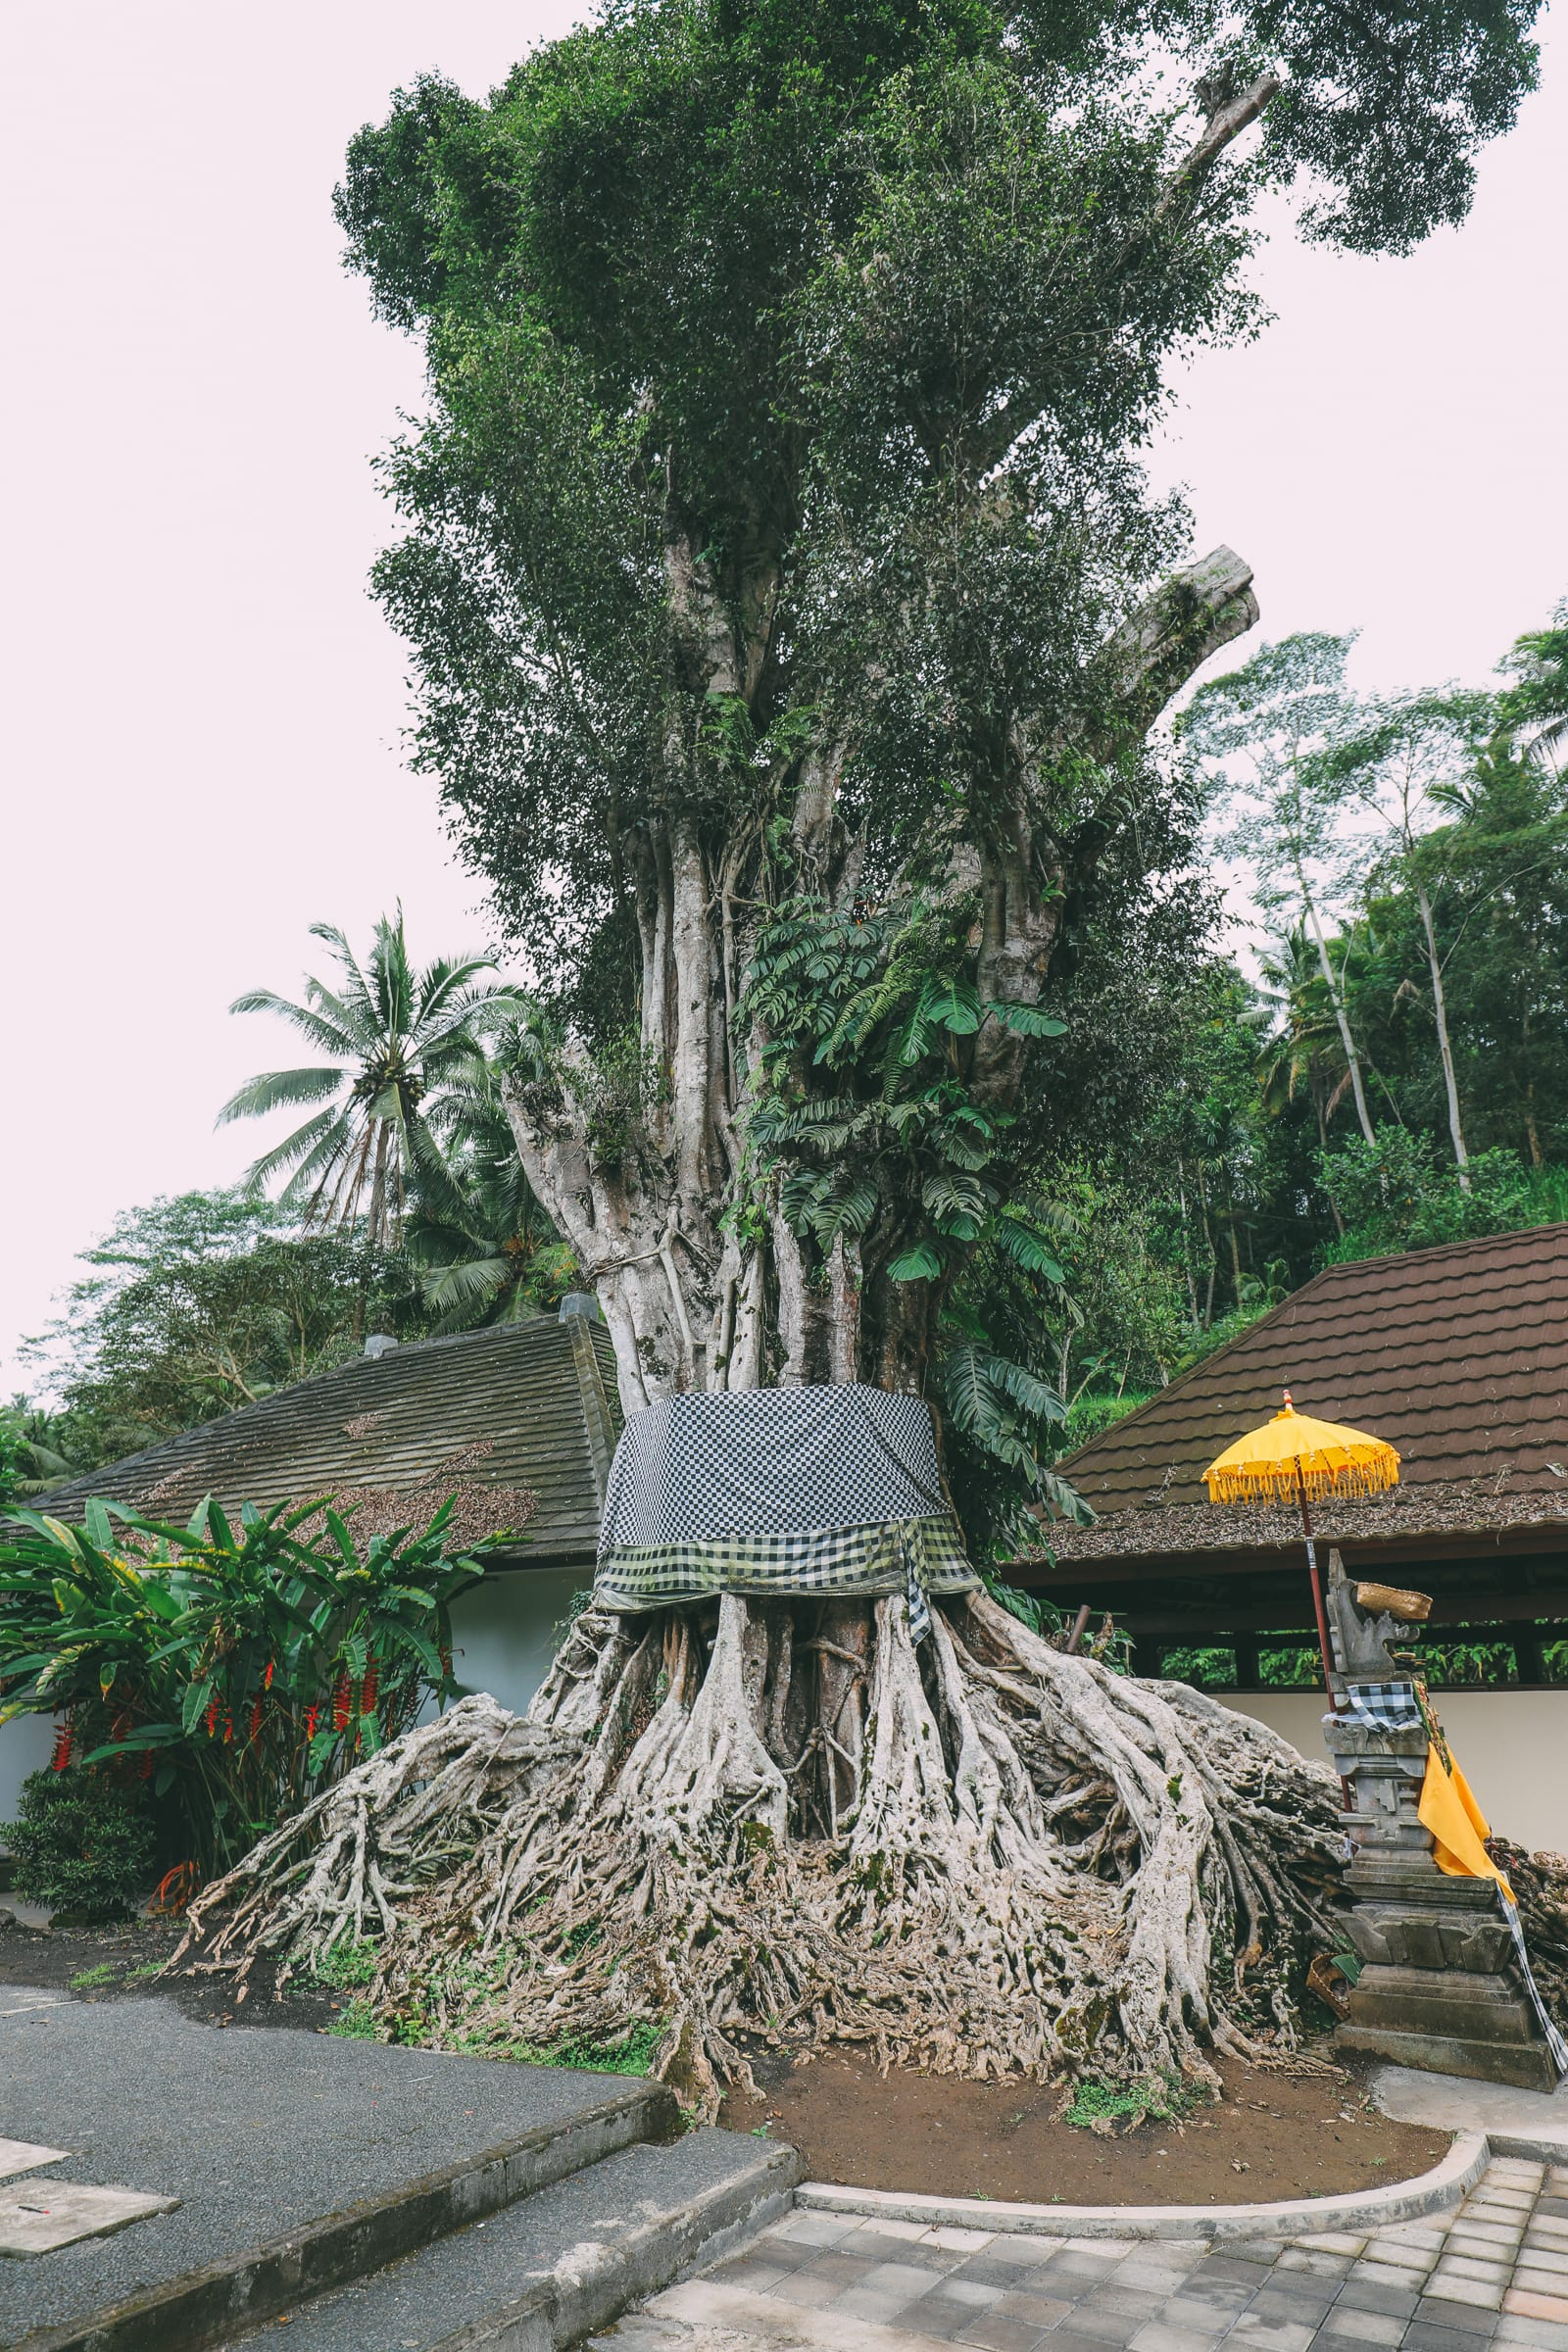 Finding A Secret Waterfall in Bali, Tirta Empul Temple And Mount Batur Volcano (25)